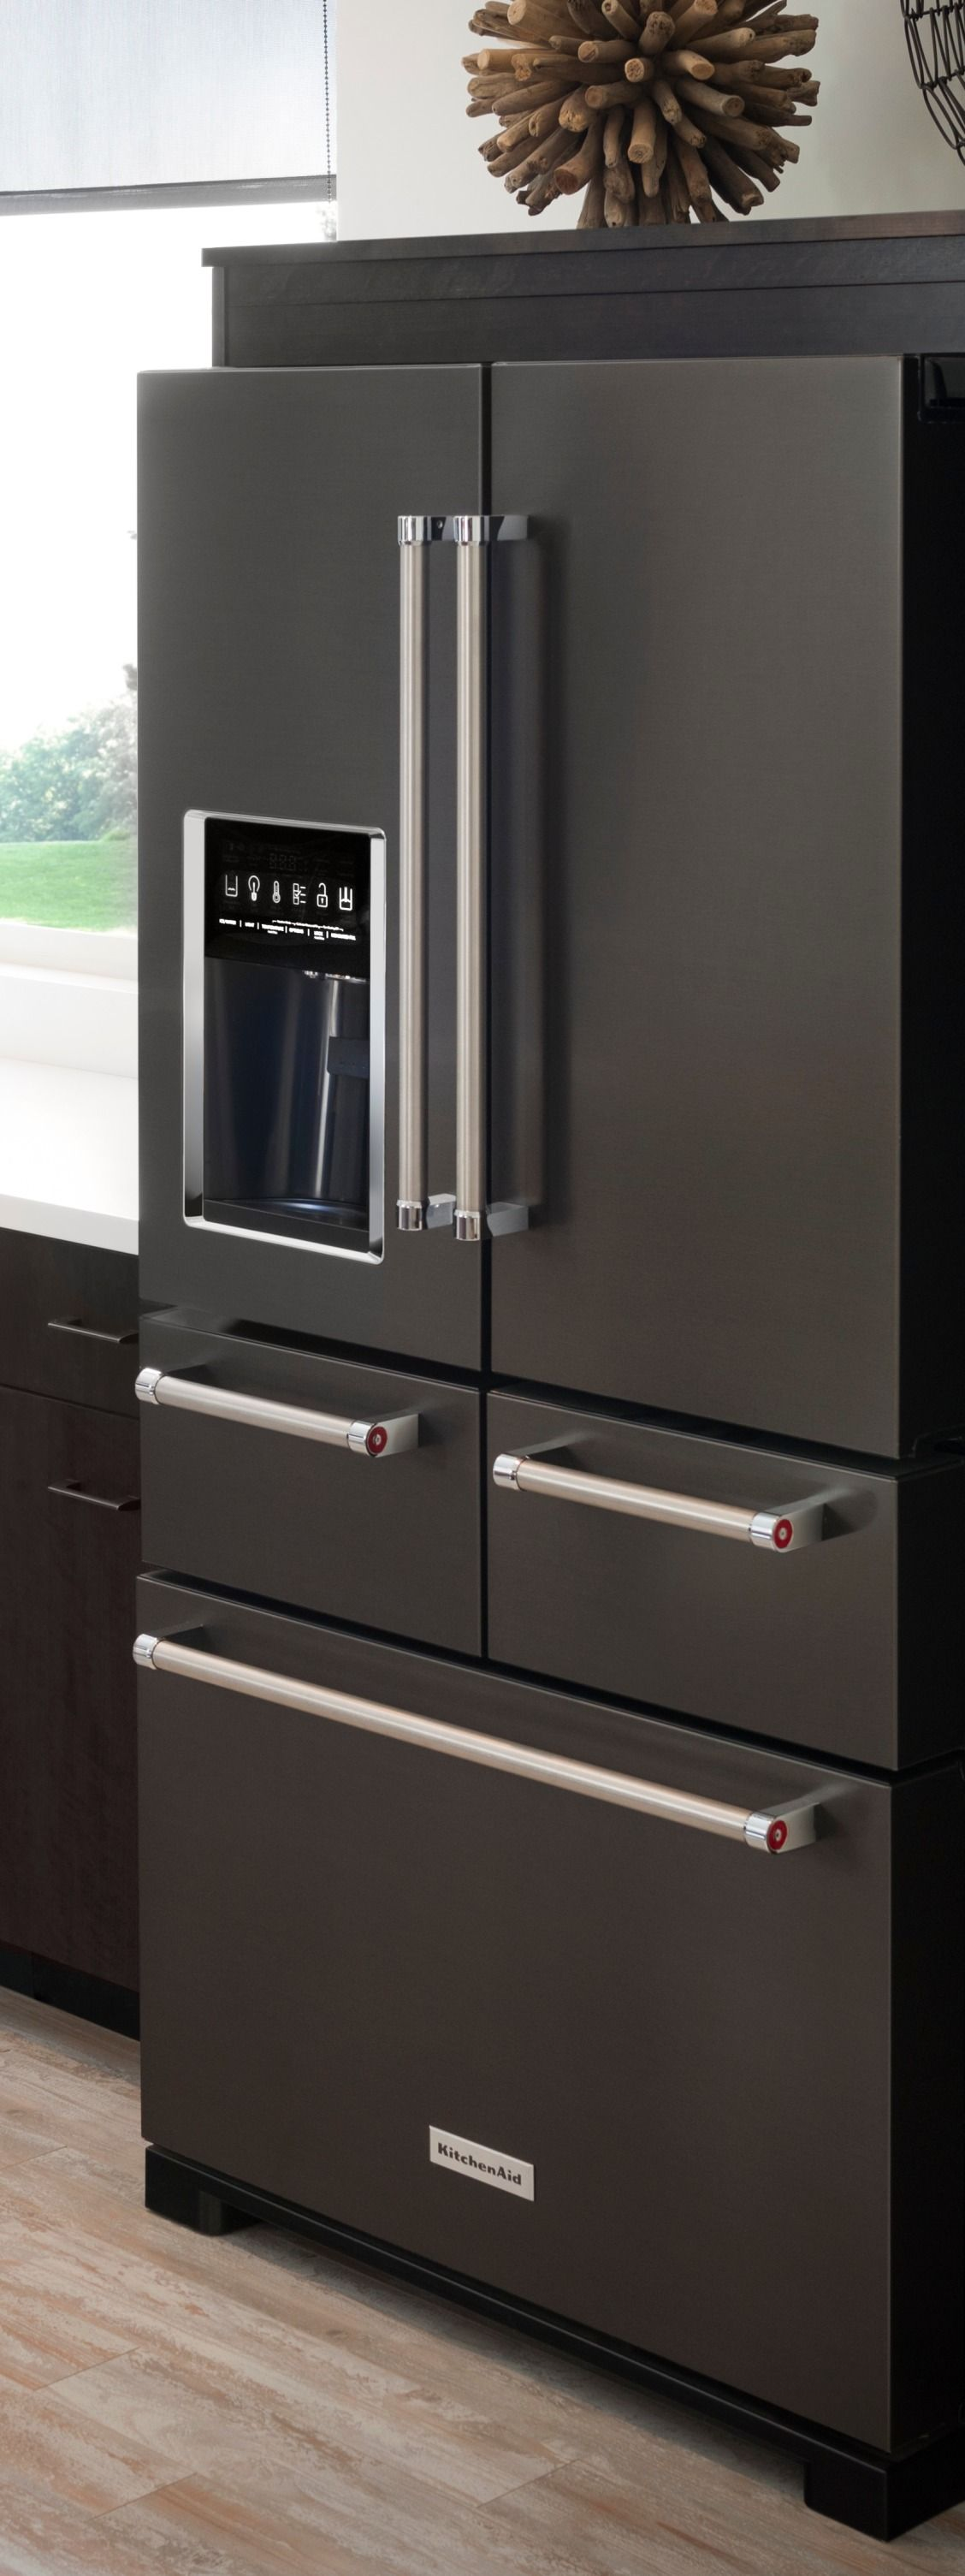 Kitchenaid 25 8 Cu Ft 5 Door French Door Refrigerator With Ice Maker Black Stainless With Printshield Lowes Com Black Stainless Steel Appliances Appliances Kitchen Stainless Steel Kitchen Appliance Storage